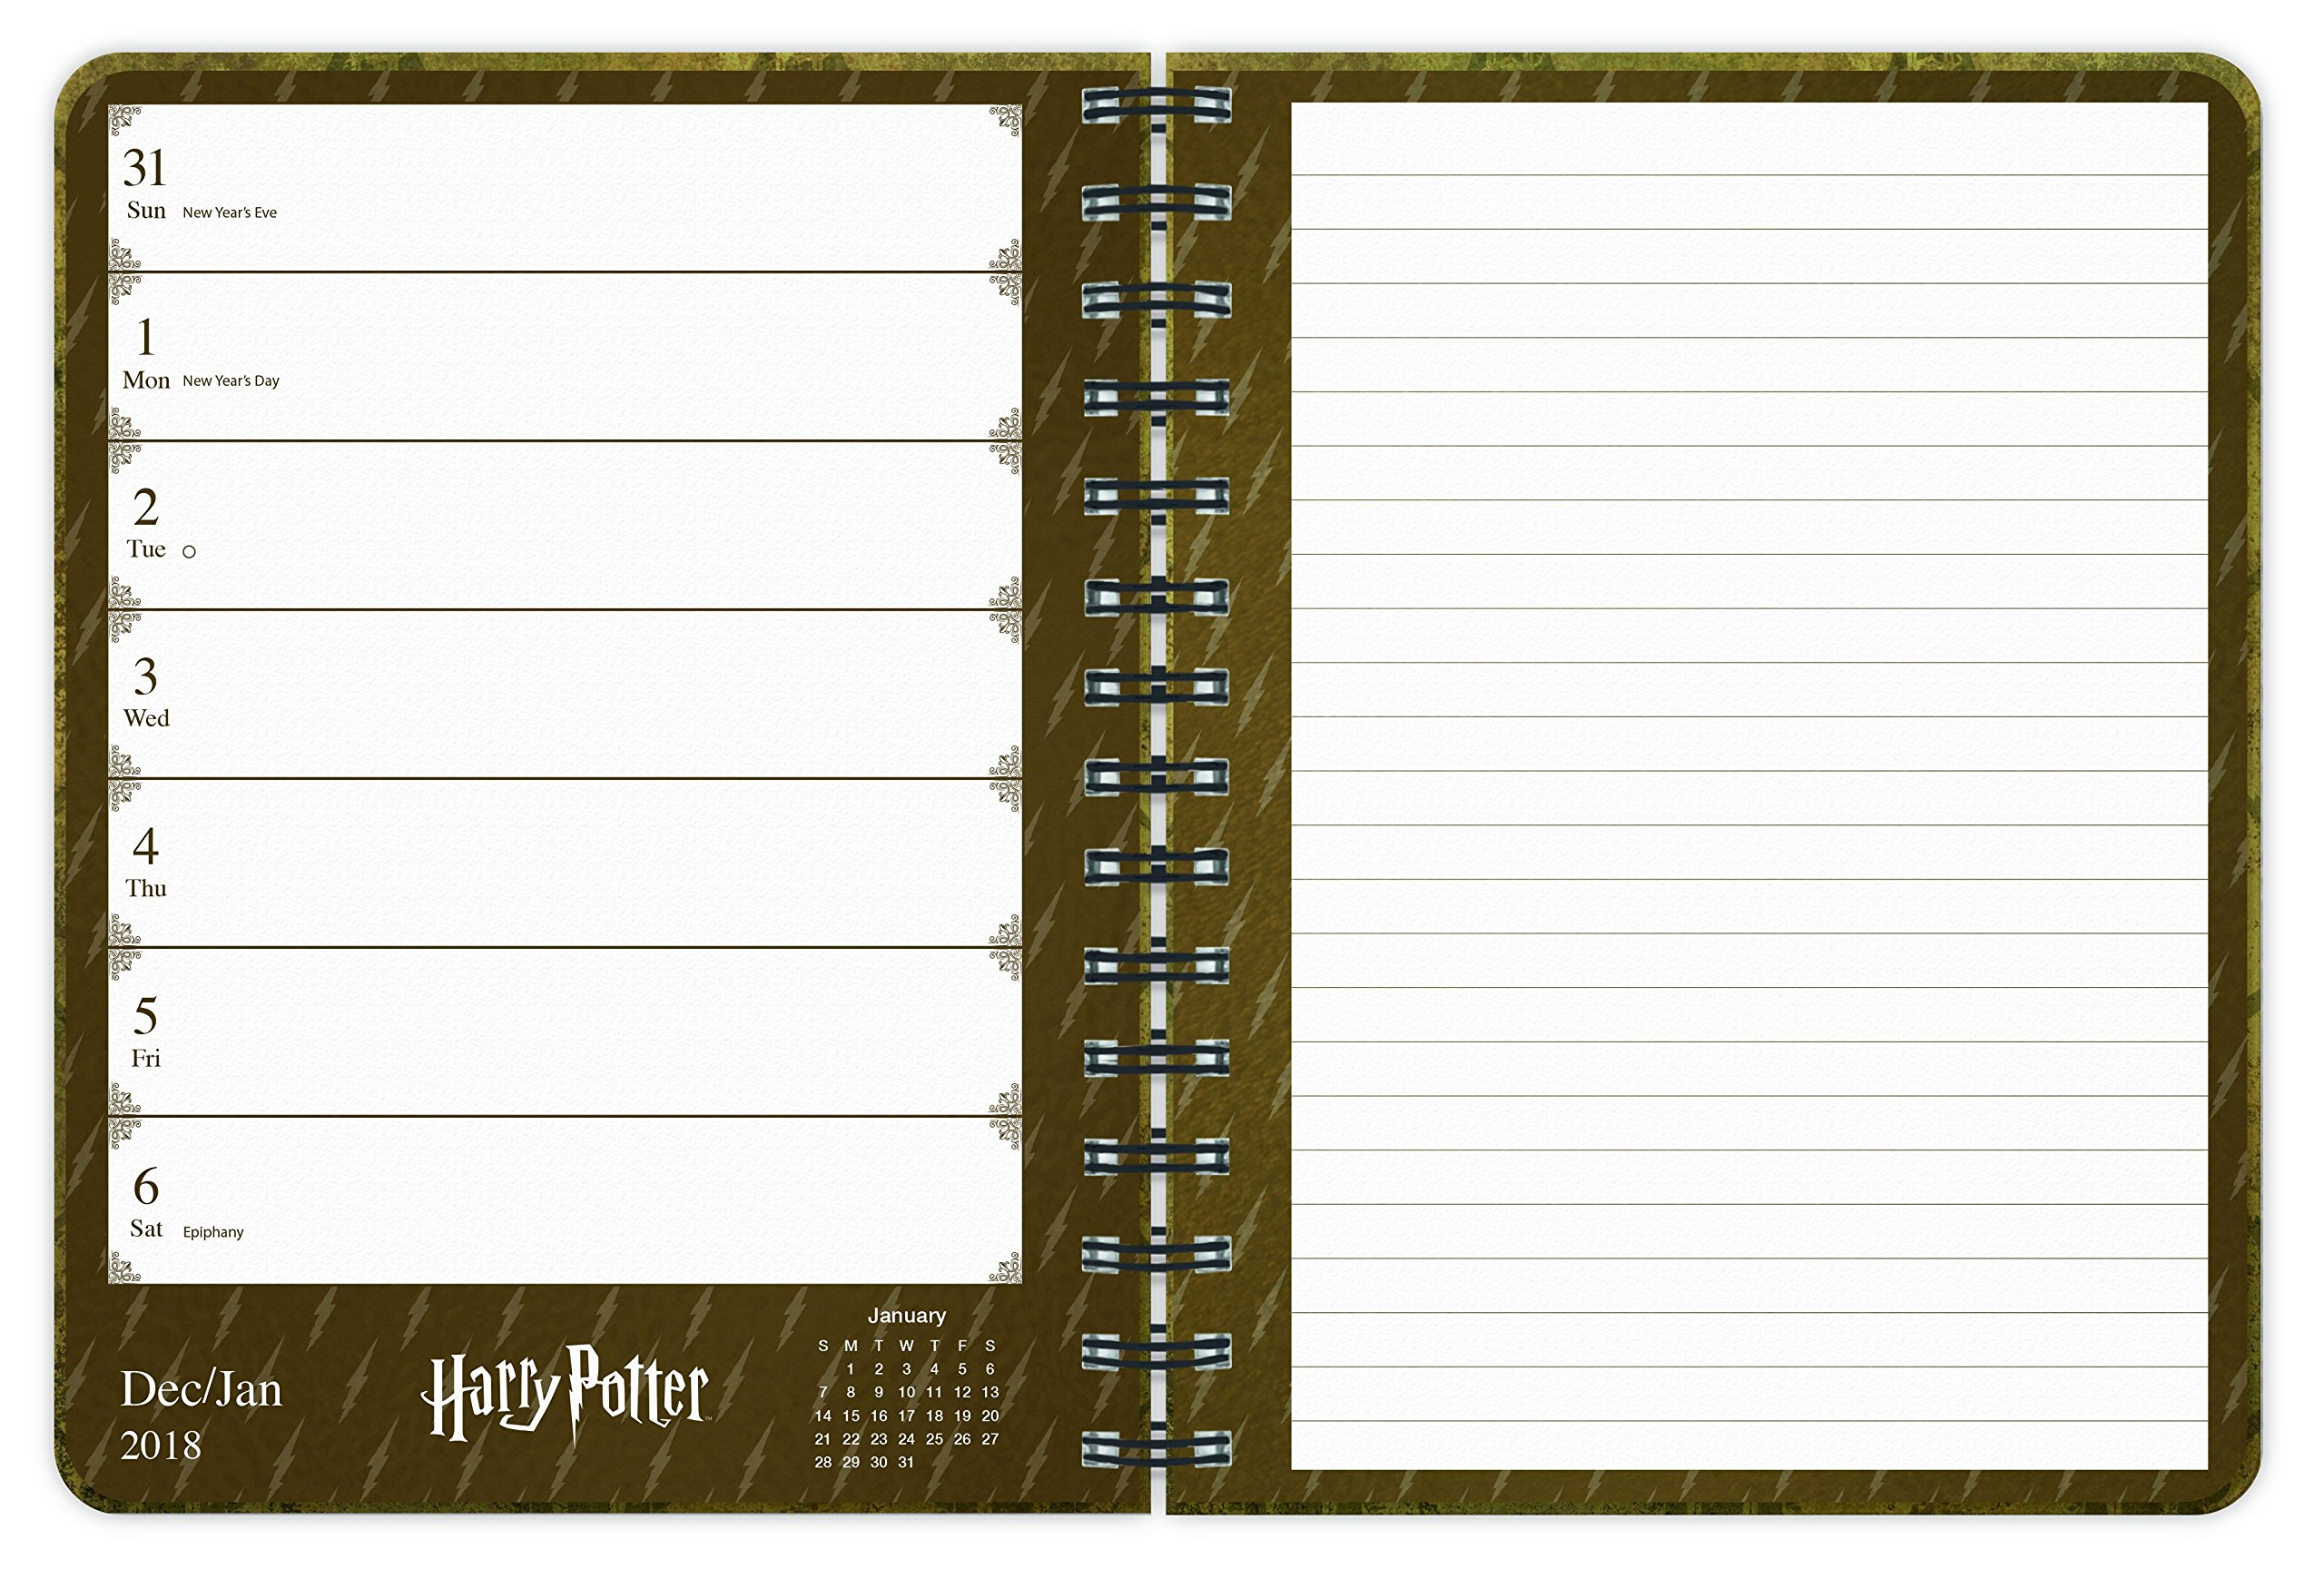 Harry Potter 2018 Weekly Note Planner: Amazon.es: Trends ...